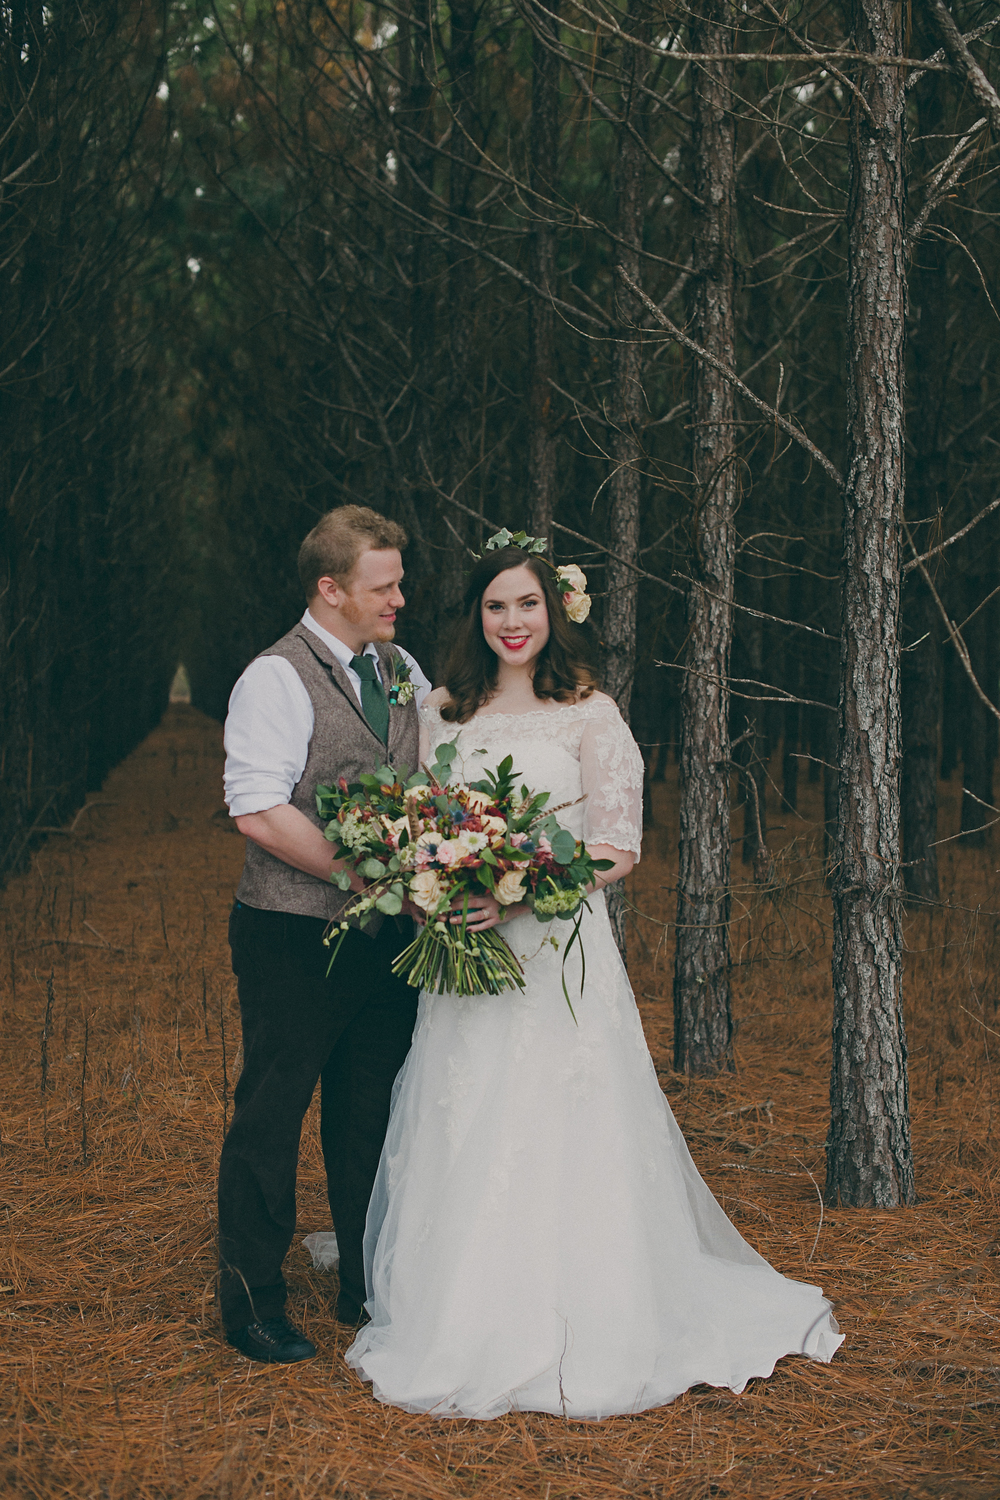 Ng-Photography-backyard-wedding-royal-hair-and-makeup-ivory-and-beau-wedding-planning-wedding-flowers-savannah-florist-savannah-flowers-savannah-weddings-savannah-wedding-savannah-event-planner-savannah-wedding-planner-savannah-rustic-wedding-20.jpg